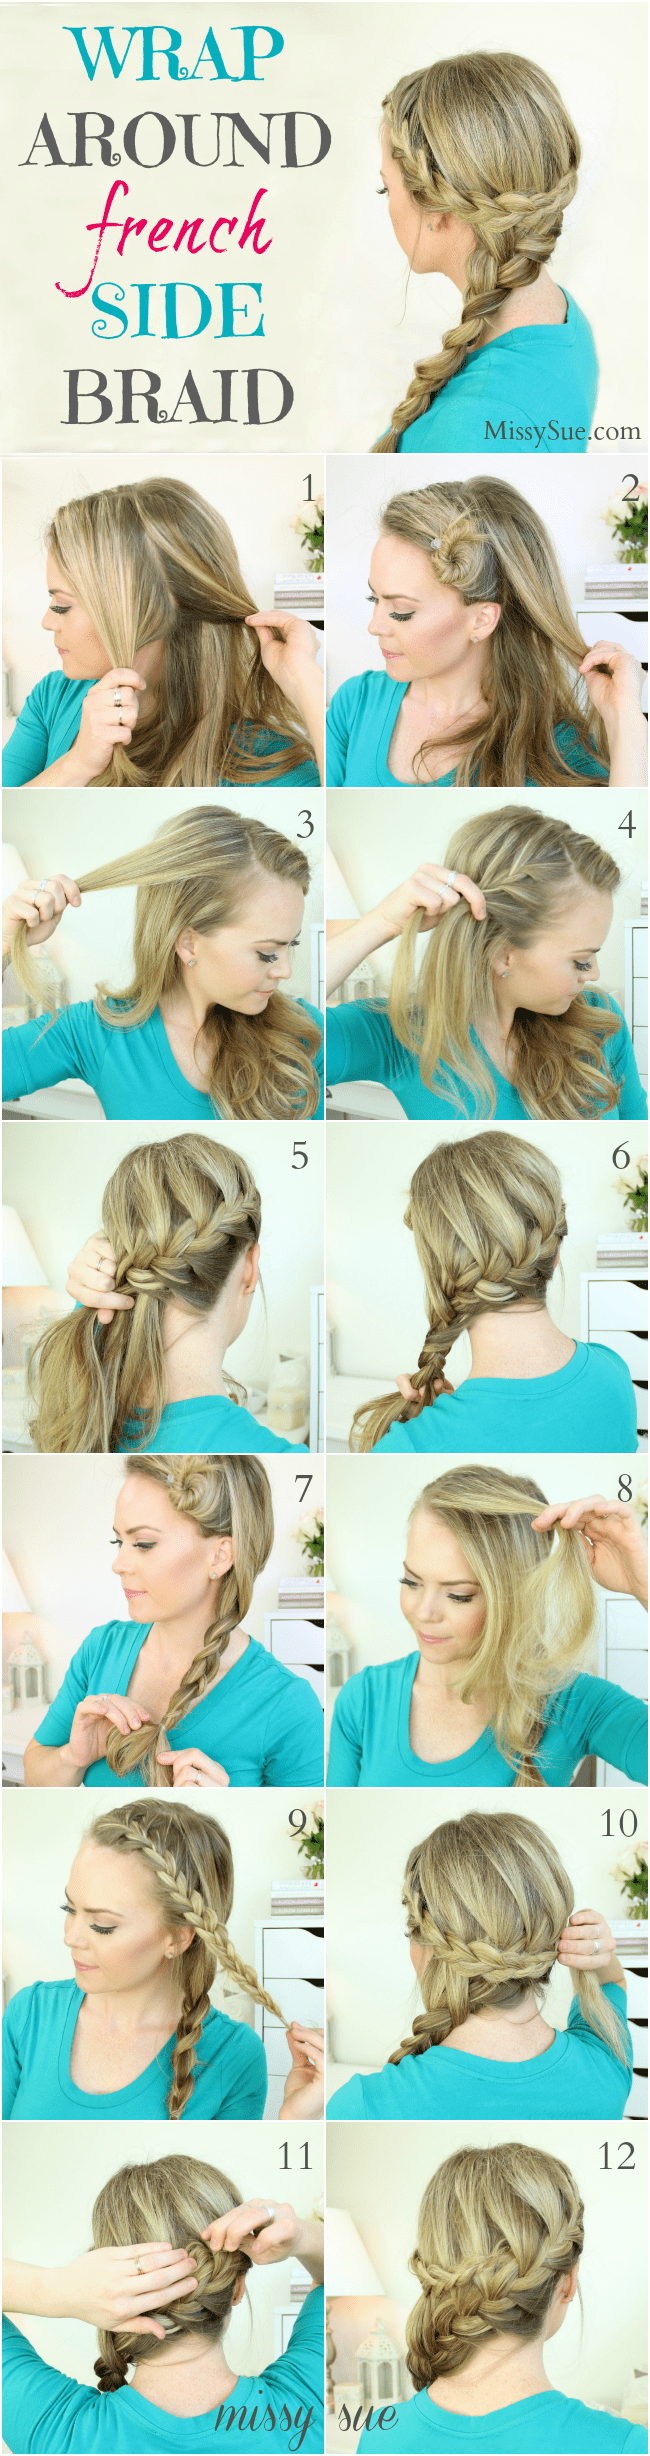 Wrap around french side braid wrap around french side braid missy sue blog1g solutioingenieria Gallery